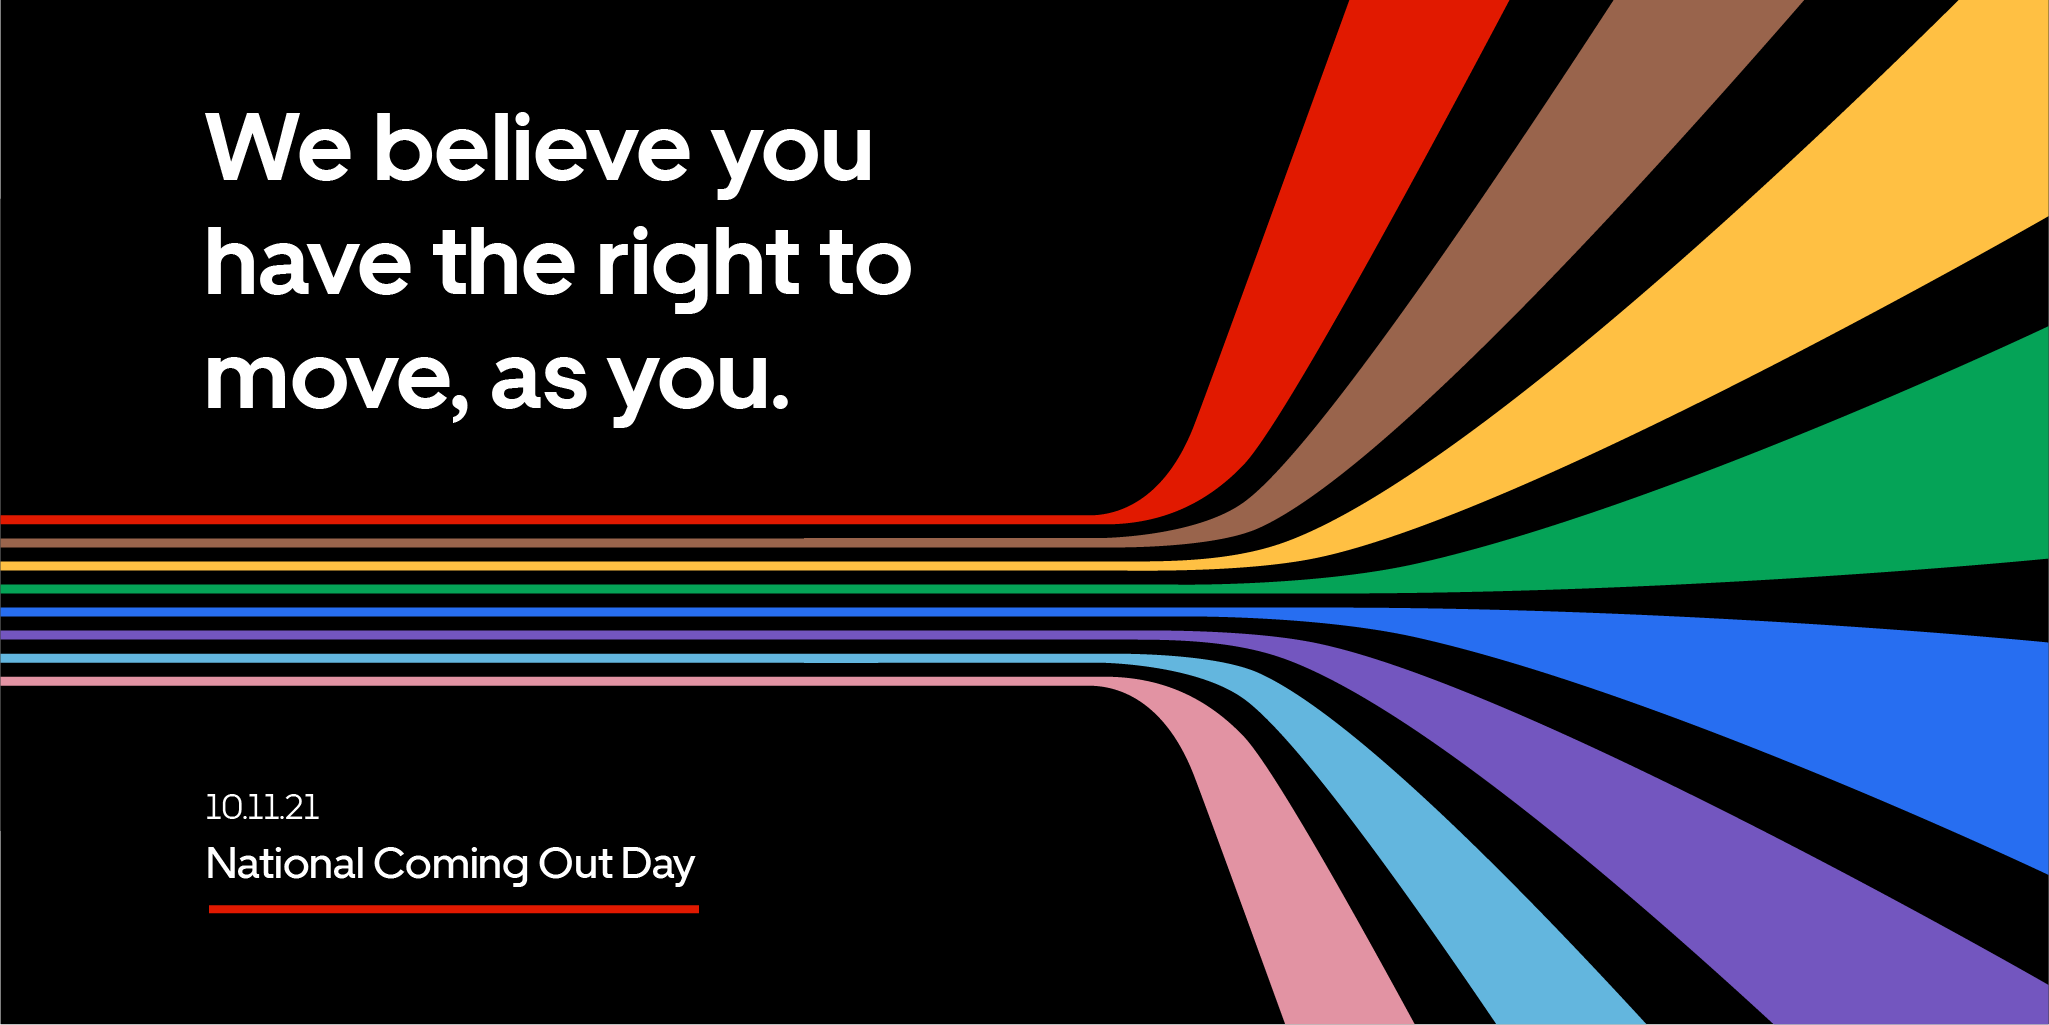 National Coming Out Day 2021